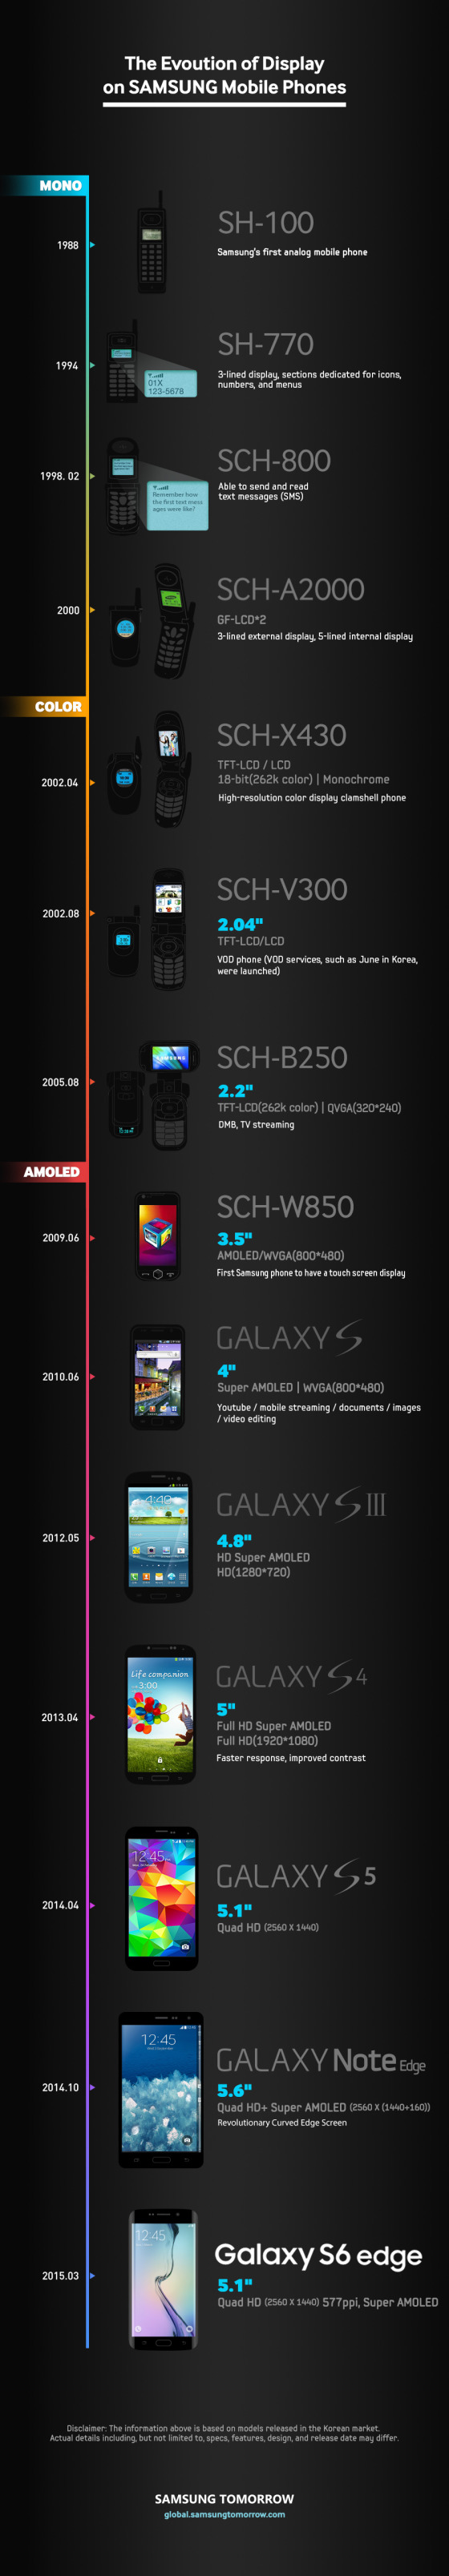 samsung-display-infographic